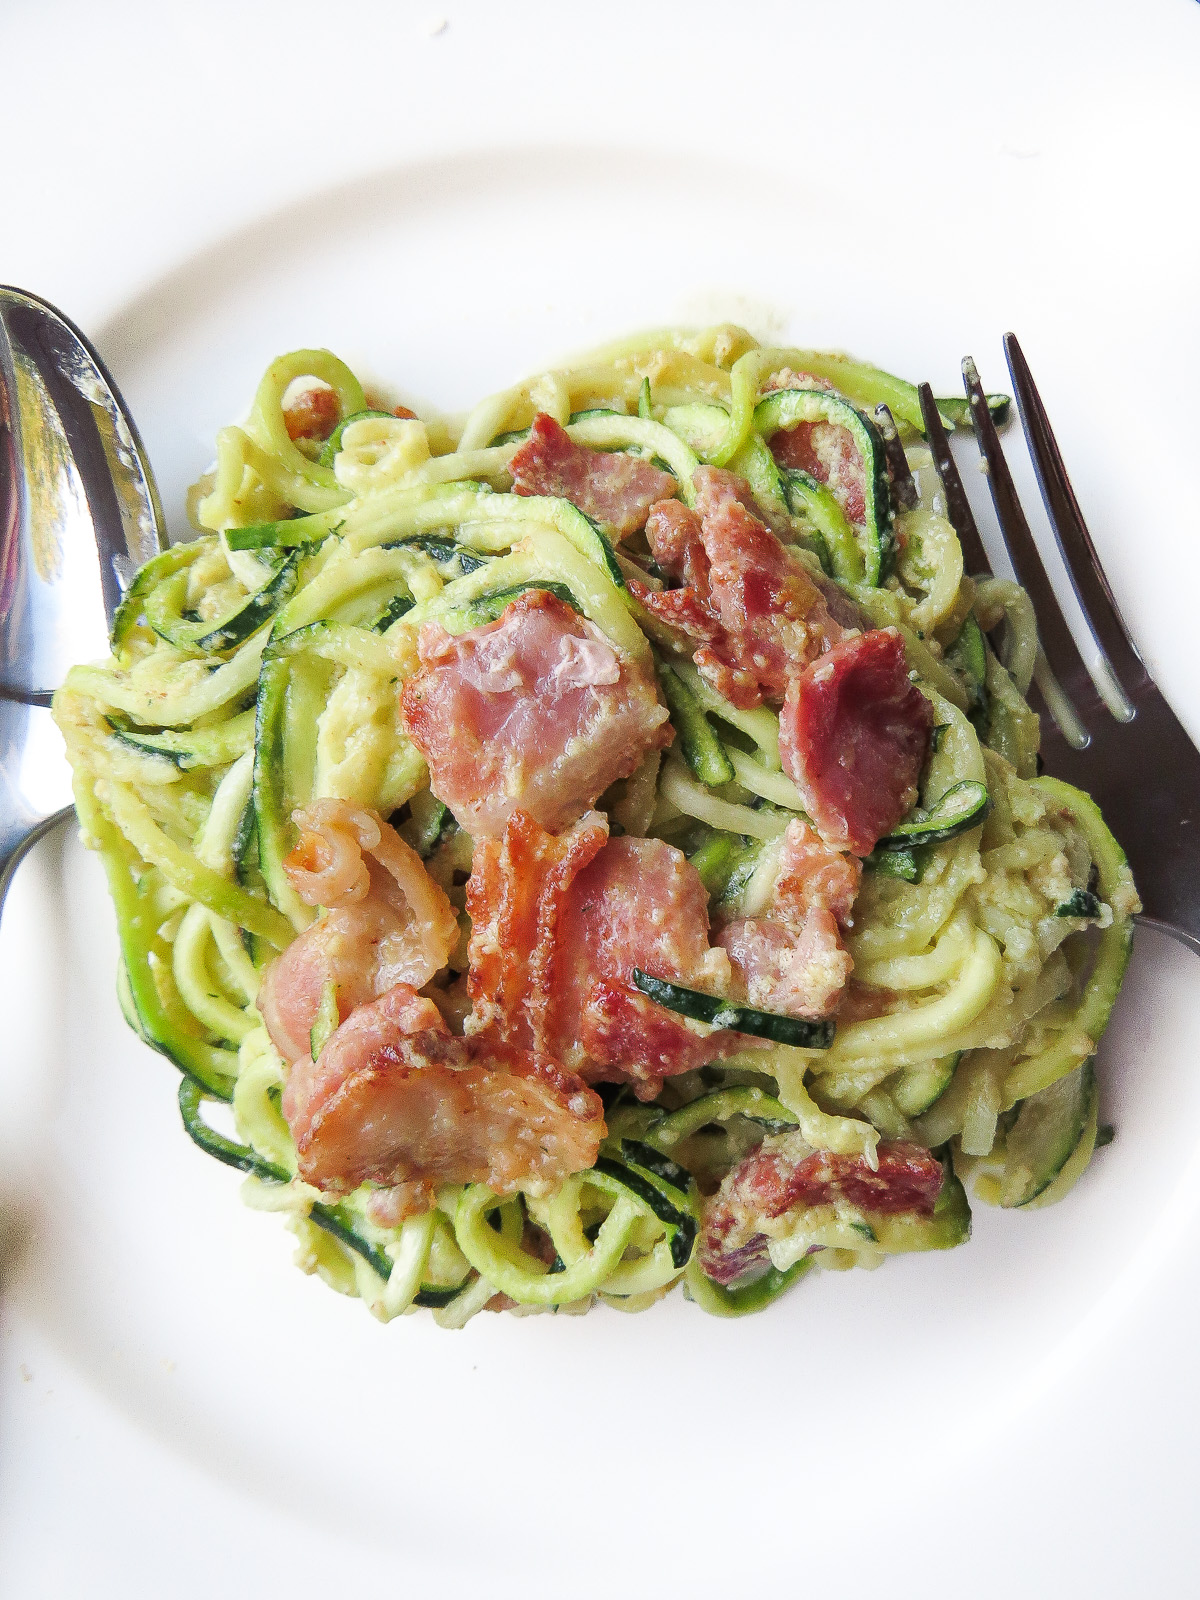 Classic Carbonara with Zucchini Noodles - With just 5 ingredients, this classic carbonara with zucchini noodles is sure to please. Plus in whips up in under 15 minutes!